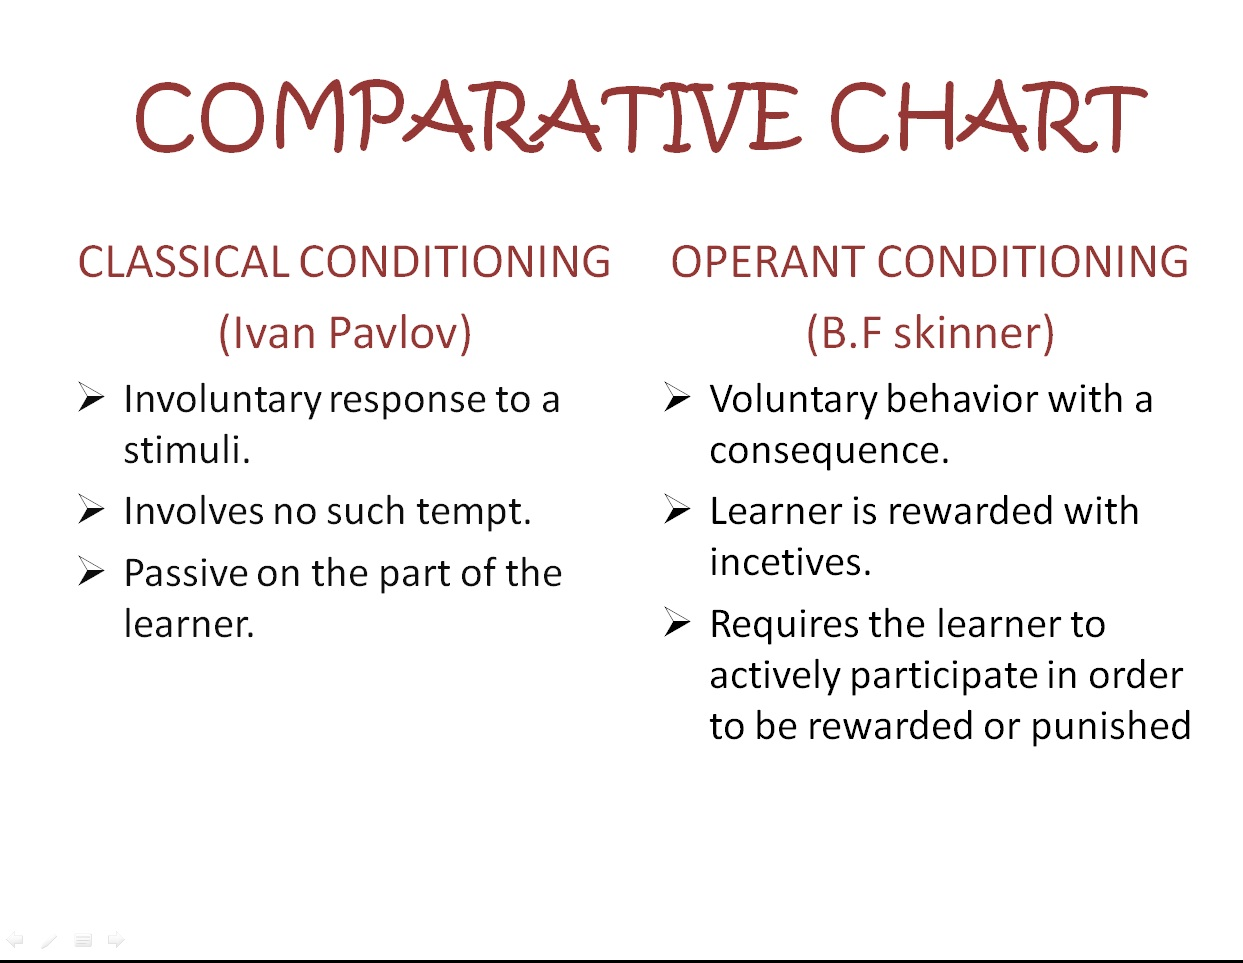 operant conditioning essay Read operant conditioning essays and research papers view and download complete sample operant conditioning essays, instructions, works cited pages, and more.